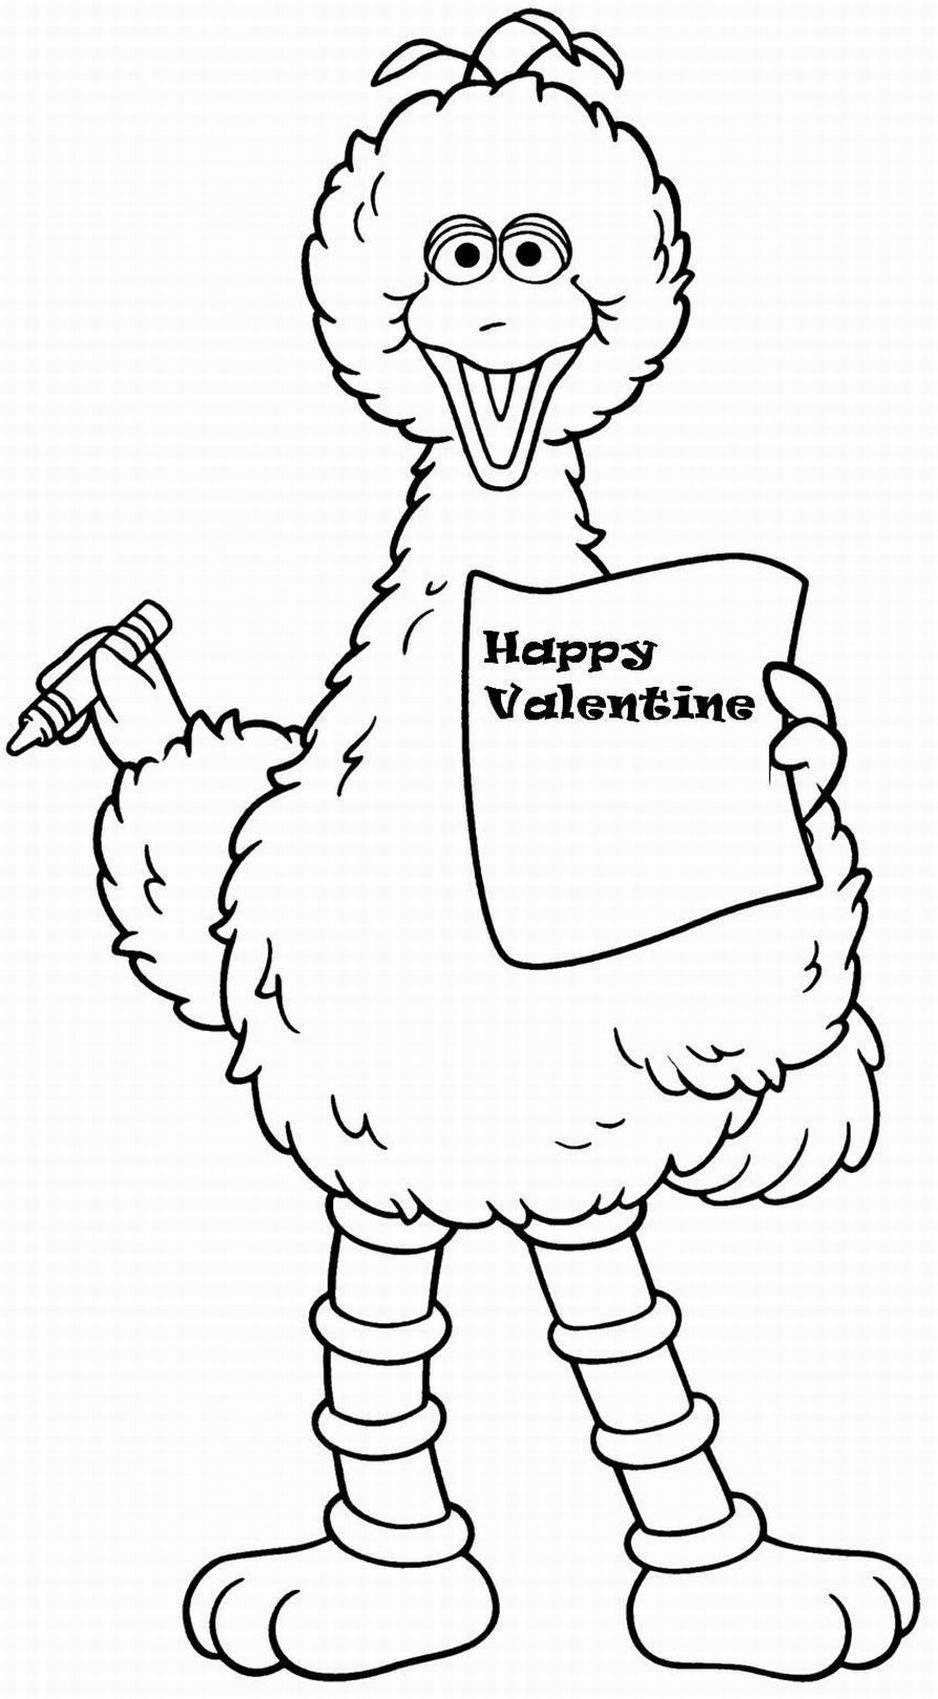 Sesame Street Printable Coloring Pages Valentine Sesame Street Coloring Pages Halloween Coloring Pages Bird Coloring Pages